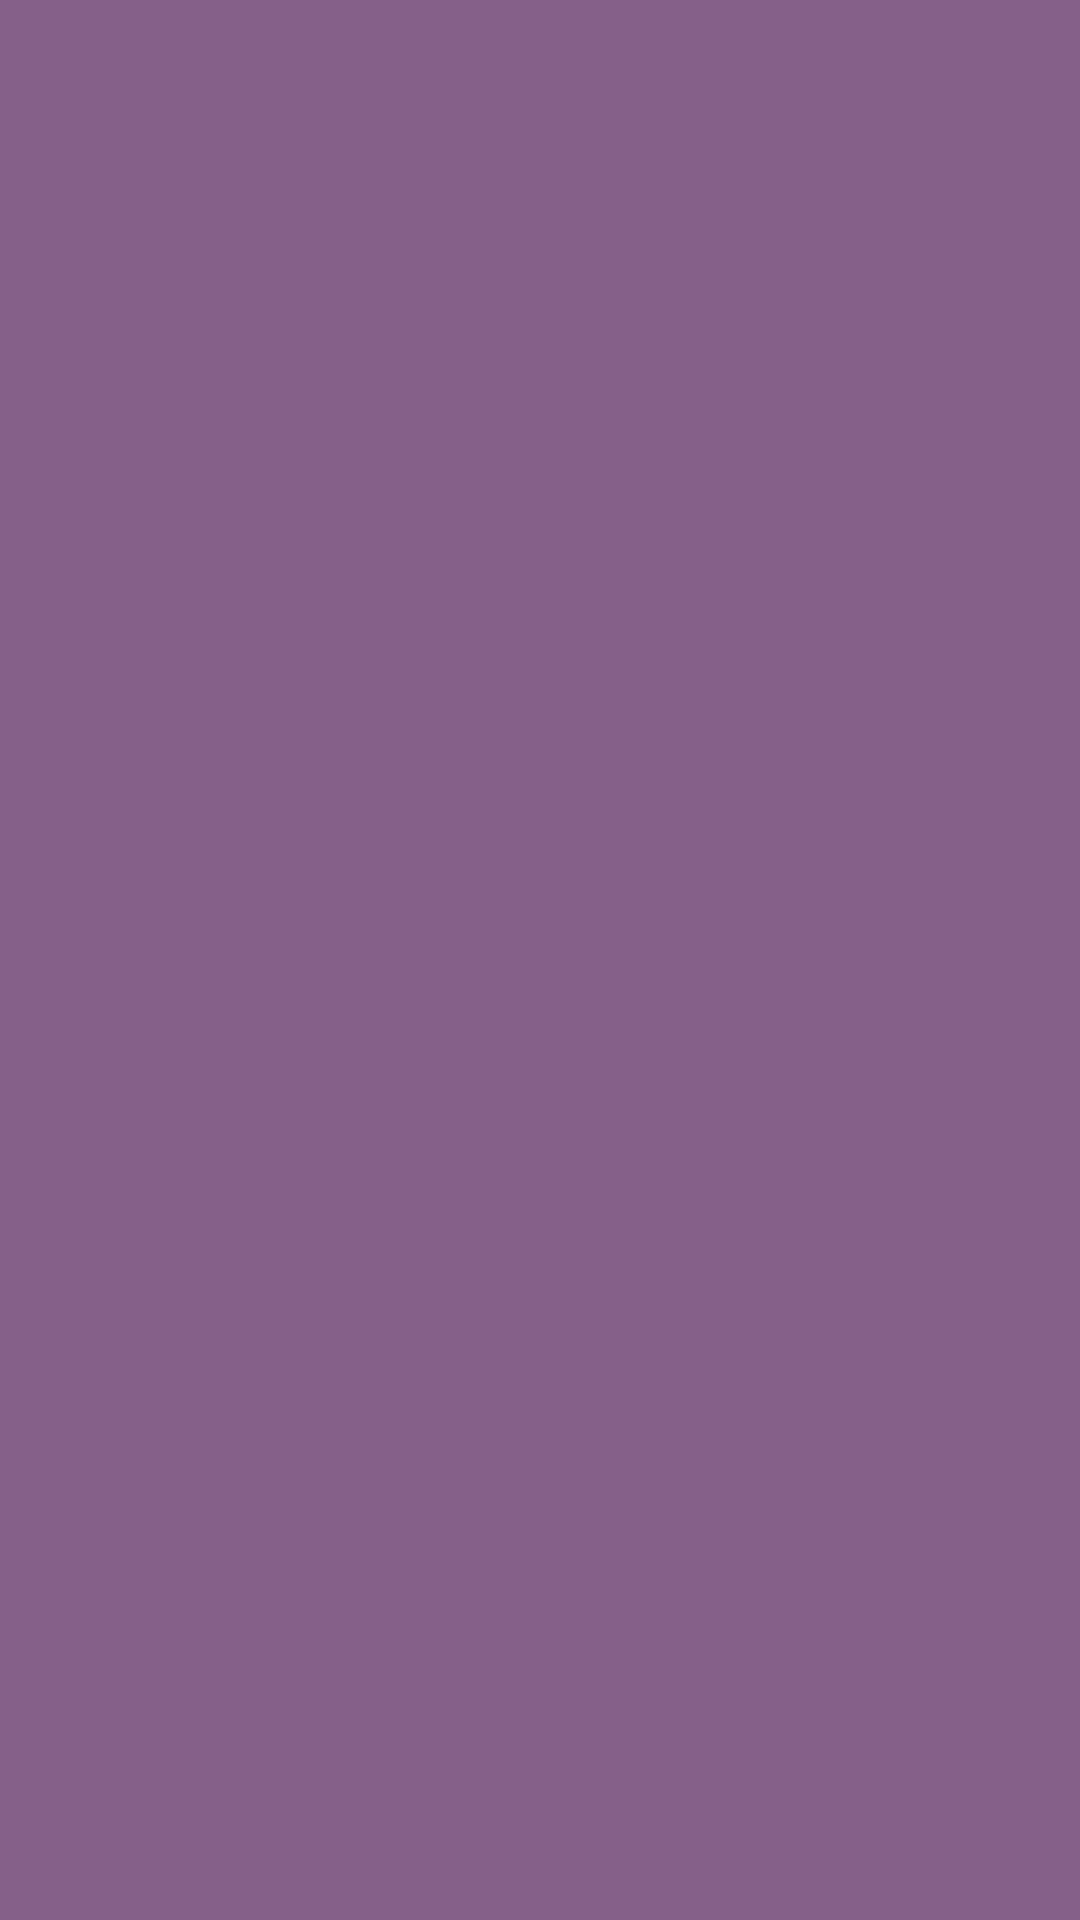 1080x1920 Chinese Violet Solid Color Background